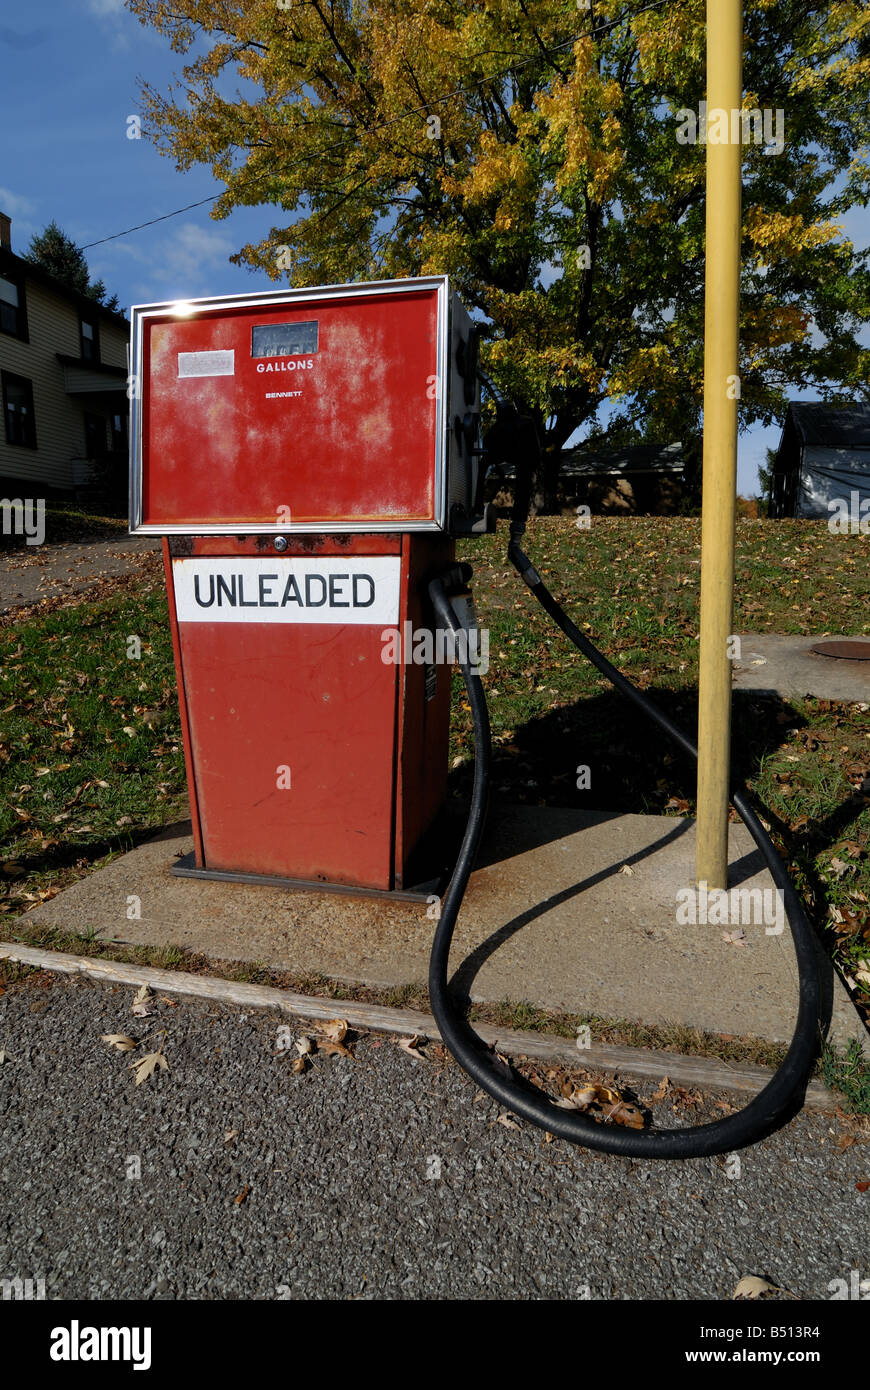 An old style gasoline pump for unleaded fueld - Stock Image